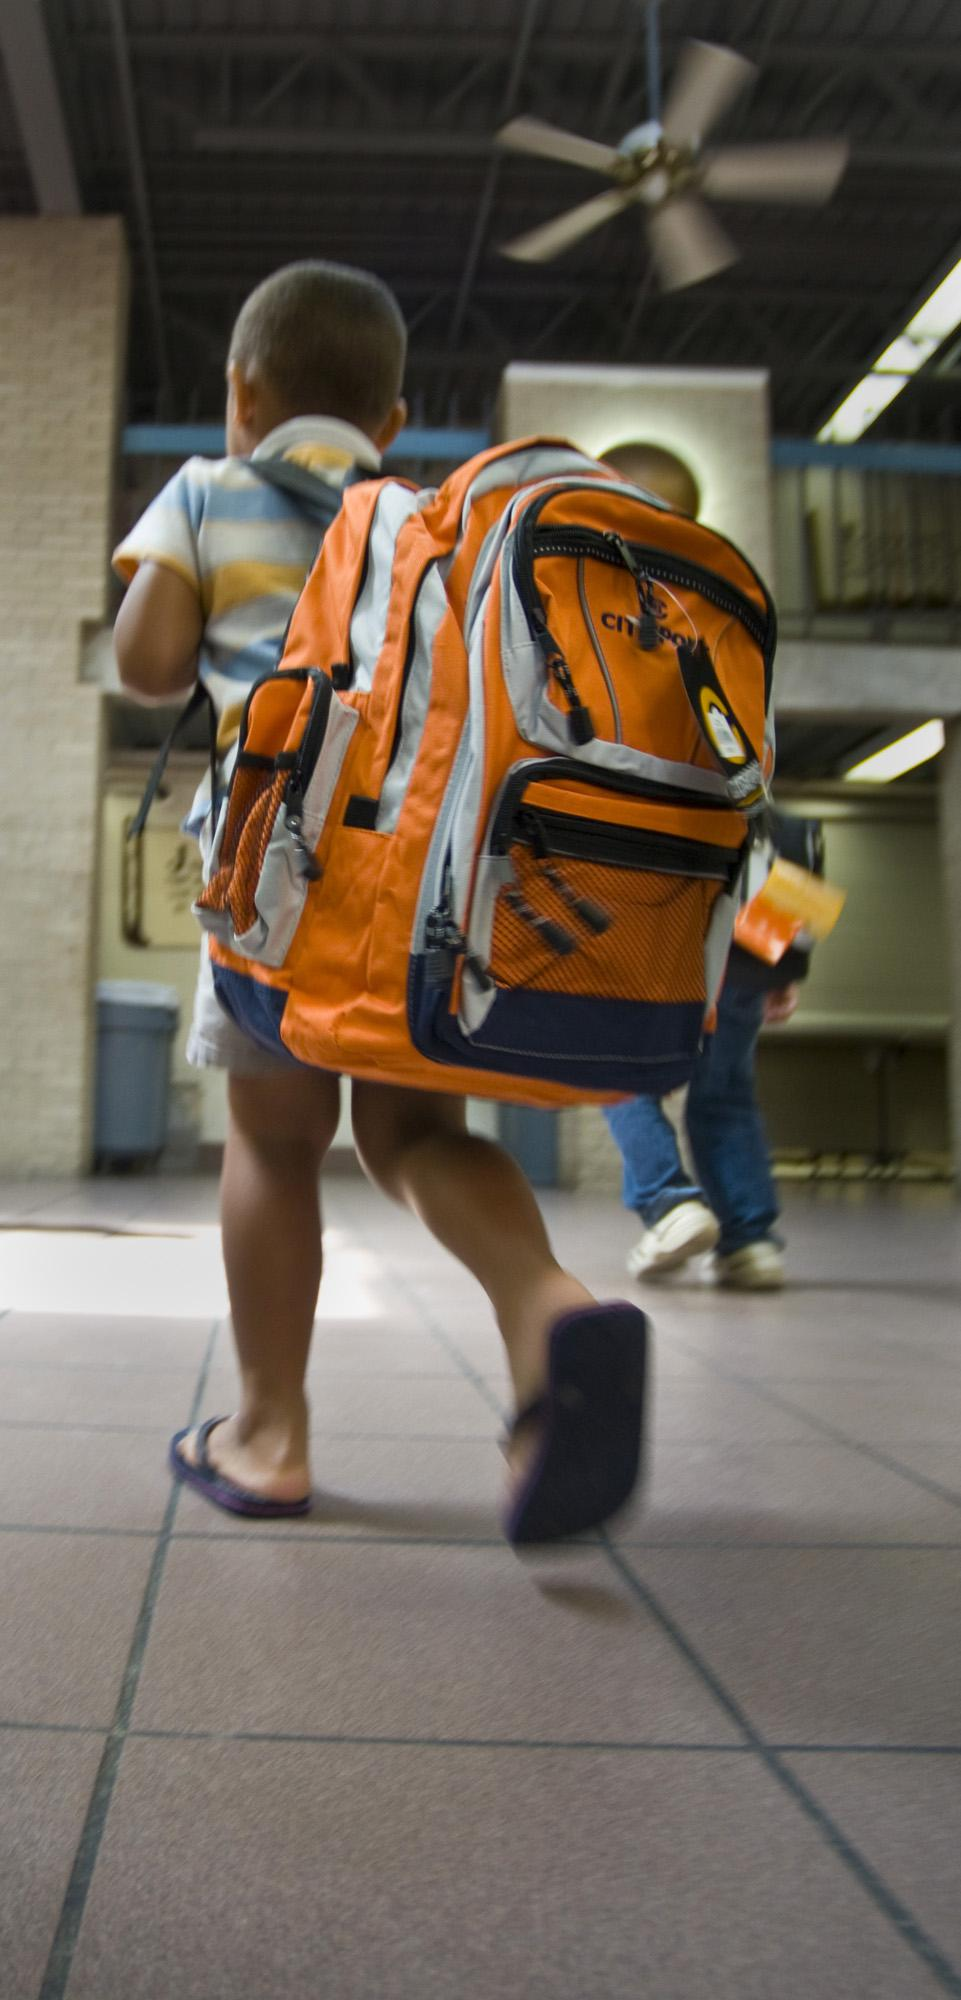 Is your child's backpack to heavy?